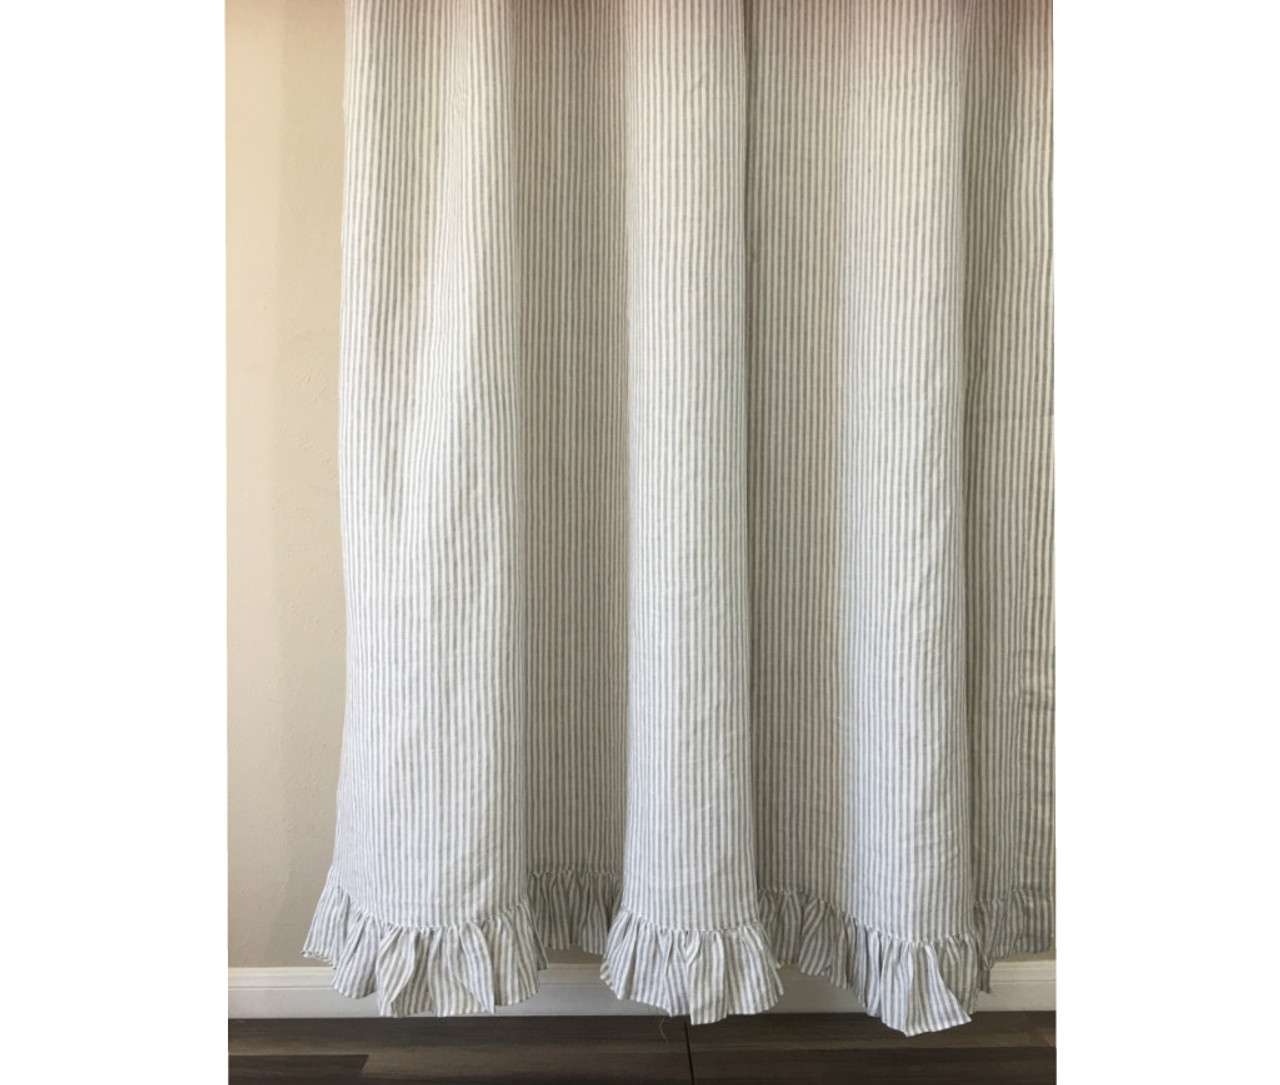 Grey White Striped Shower Curtain. Grey and White Striped Shower Curtain with Ruffle Hem stripe Linen shower curtain features ruffle hem  Mildew Free